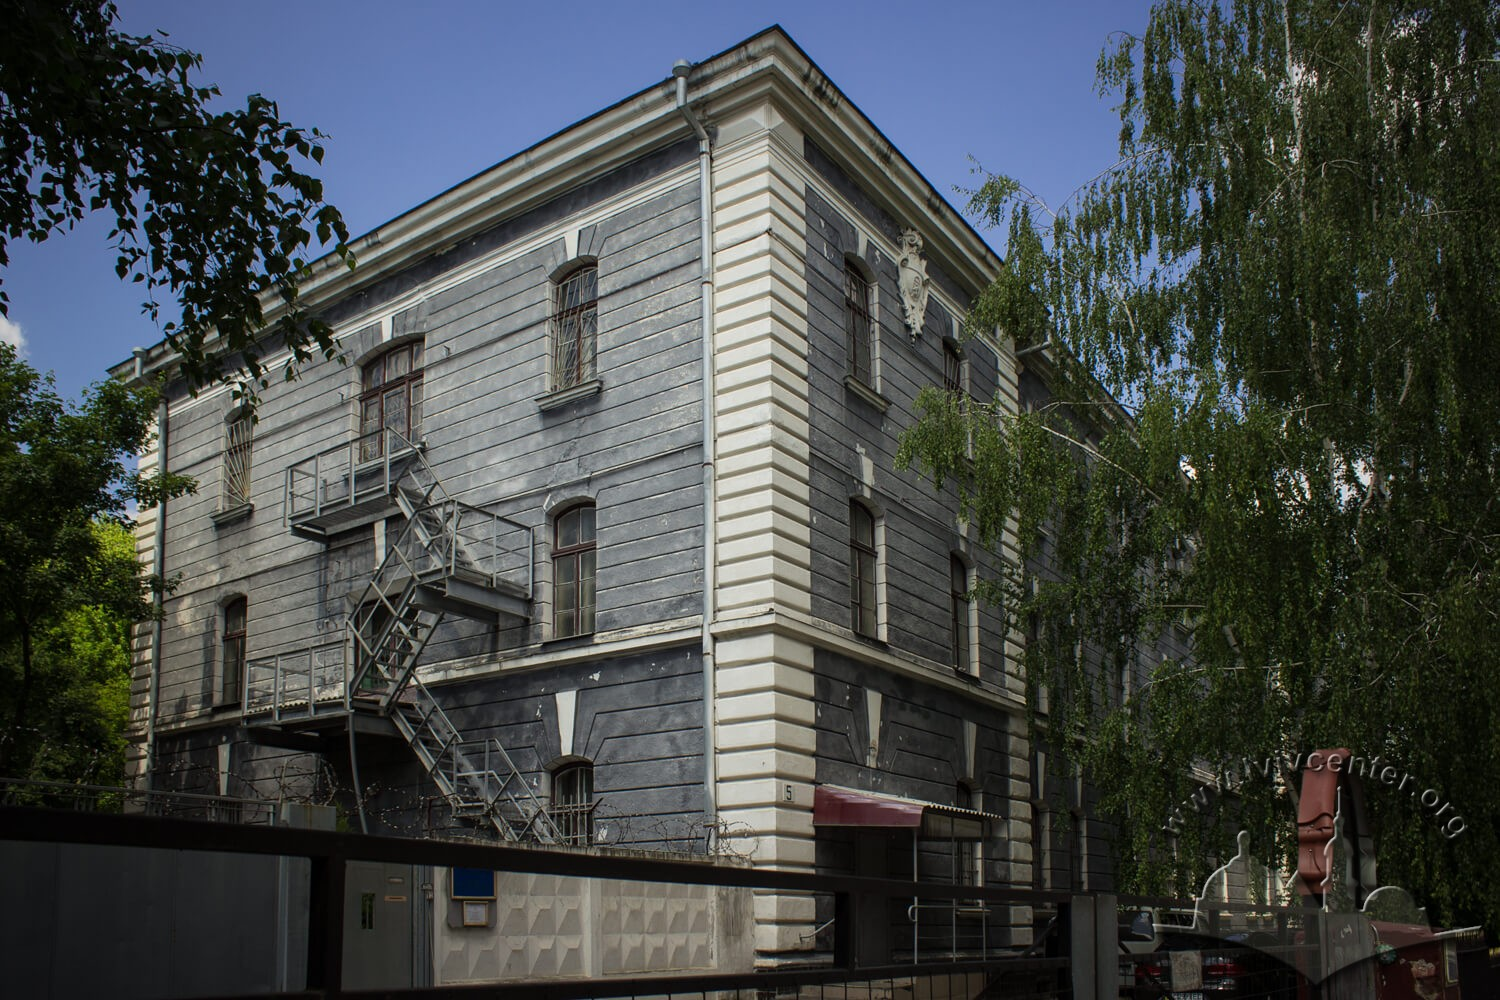 Vul. Henerala Hrekova, 5. In this building (or in #3) during interwar period, the city epidemiological hospital was located/Photo courtesy of Olha Zarechnyuk, 2016